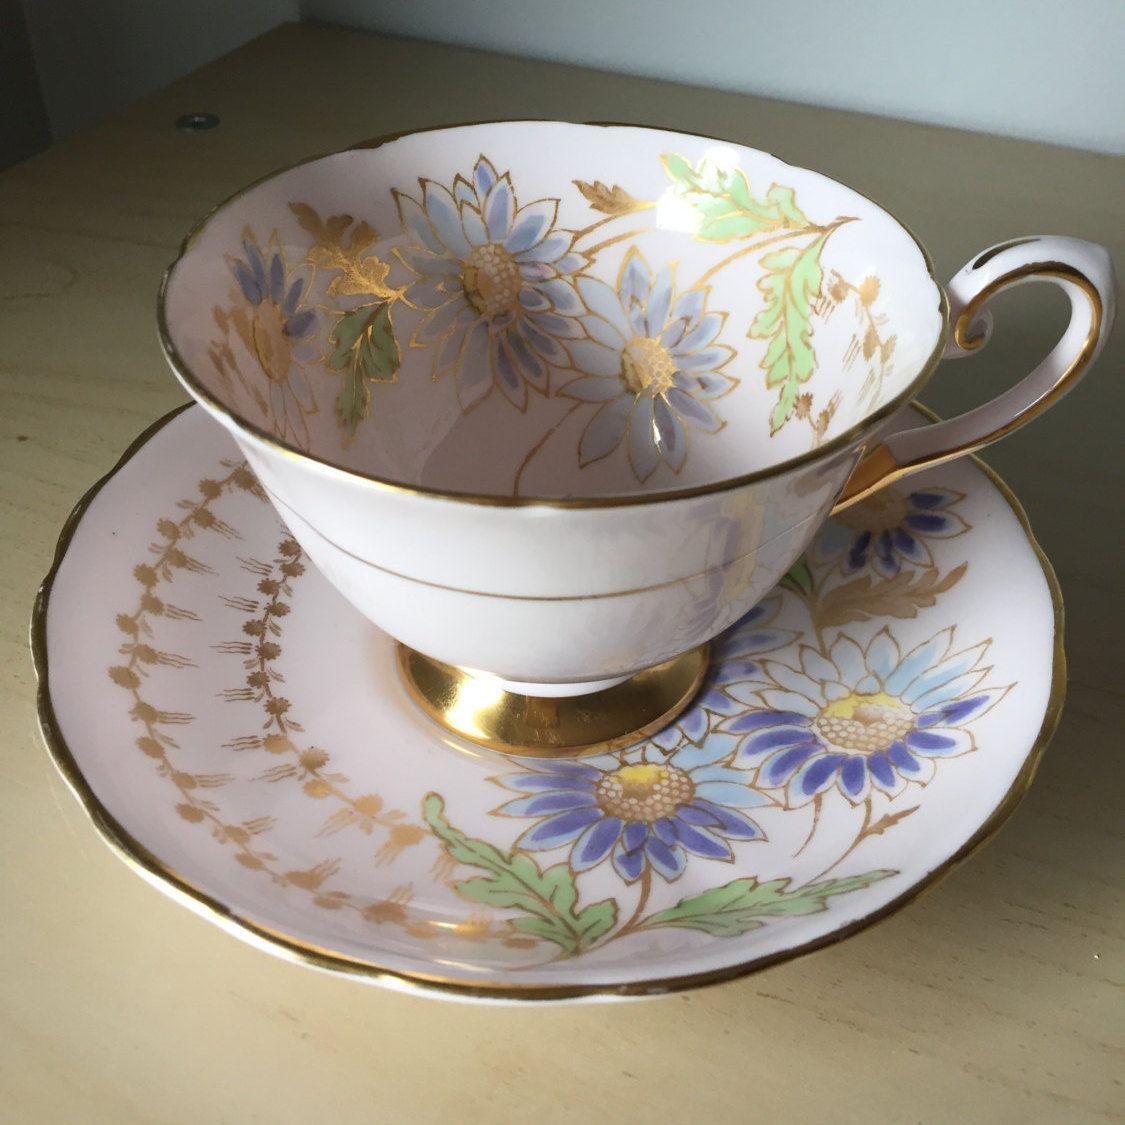 Tuscan Vintage Teacup And Saucer Light Pastel Pink Light Blue Daisy